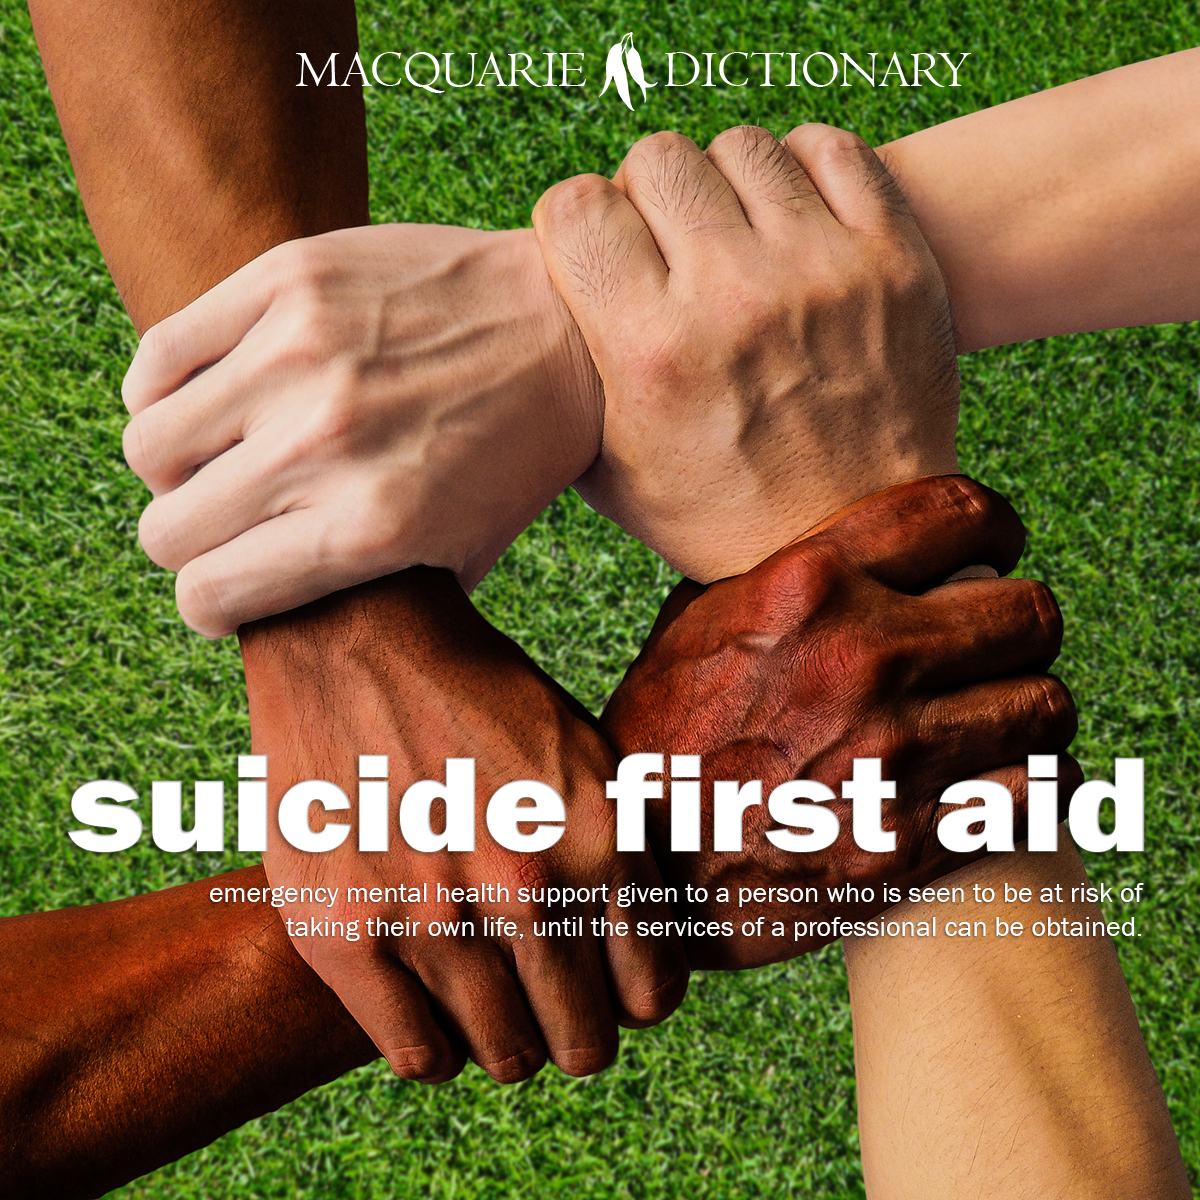 suicide first aid - emergency mental health support given to a person who is seen to be at risk of taking their own life, until the services of a professional can be obtained.